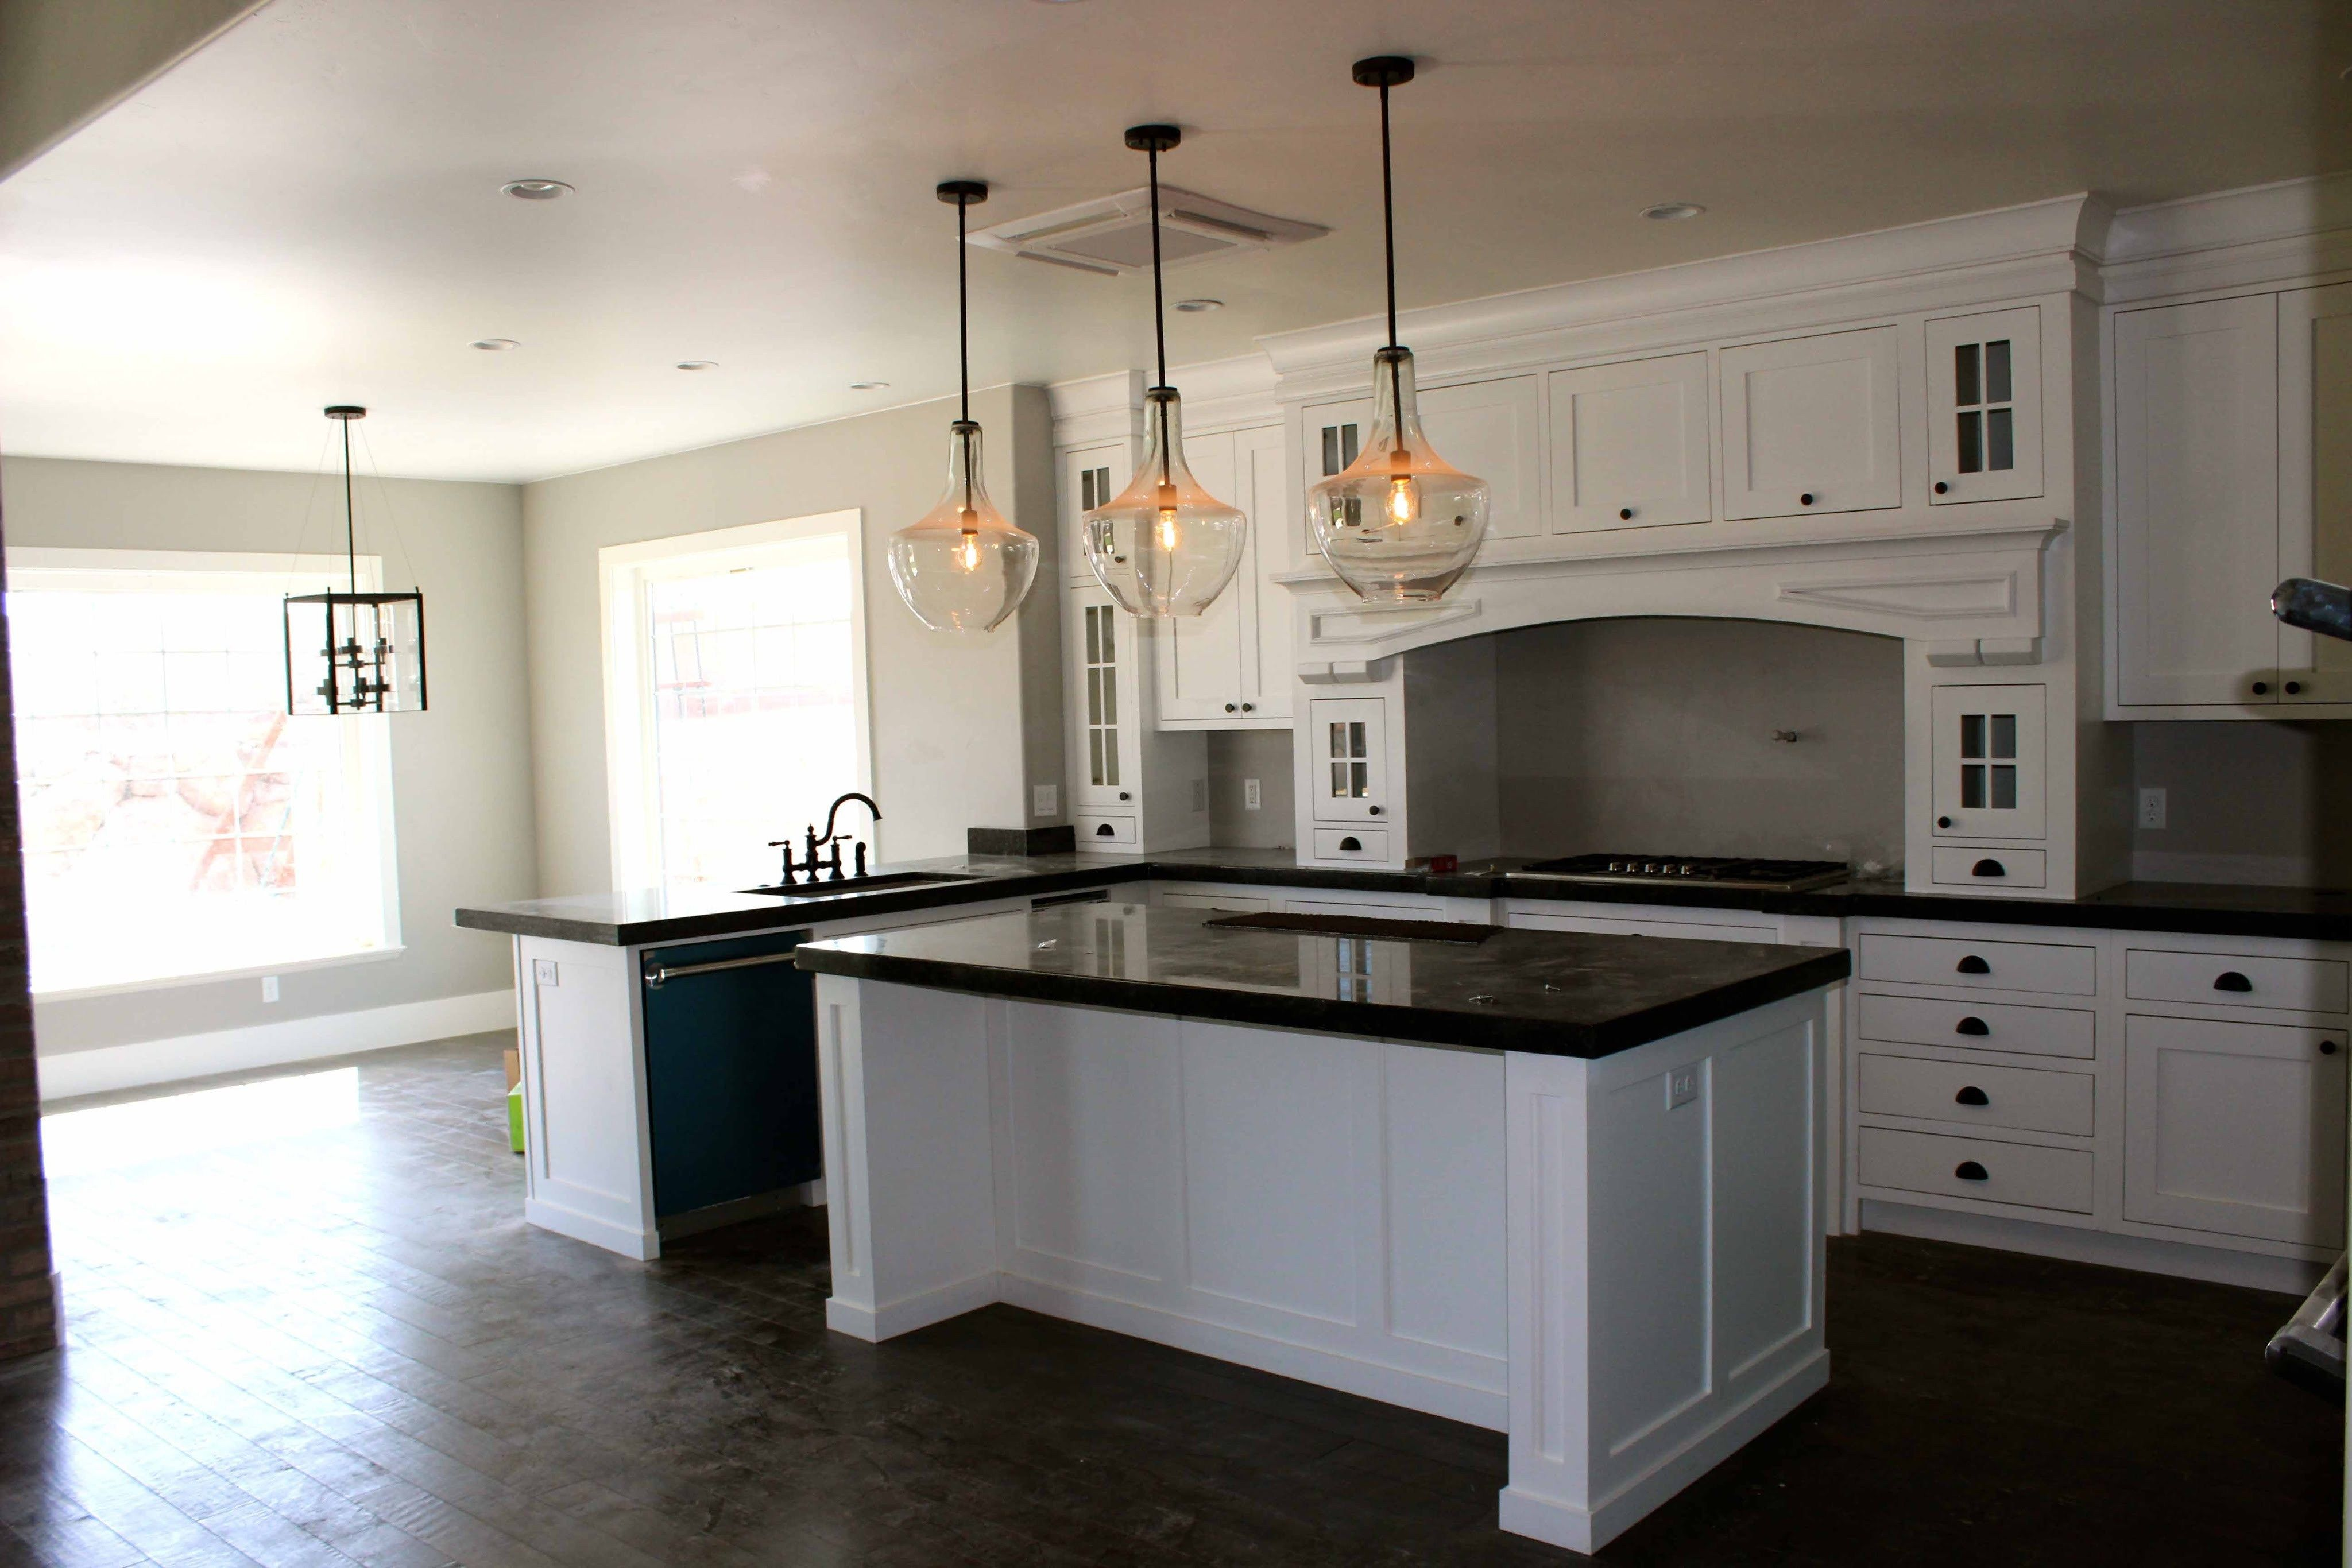 Pin On Beautiful Hanging Lights Over Kitchen Sink